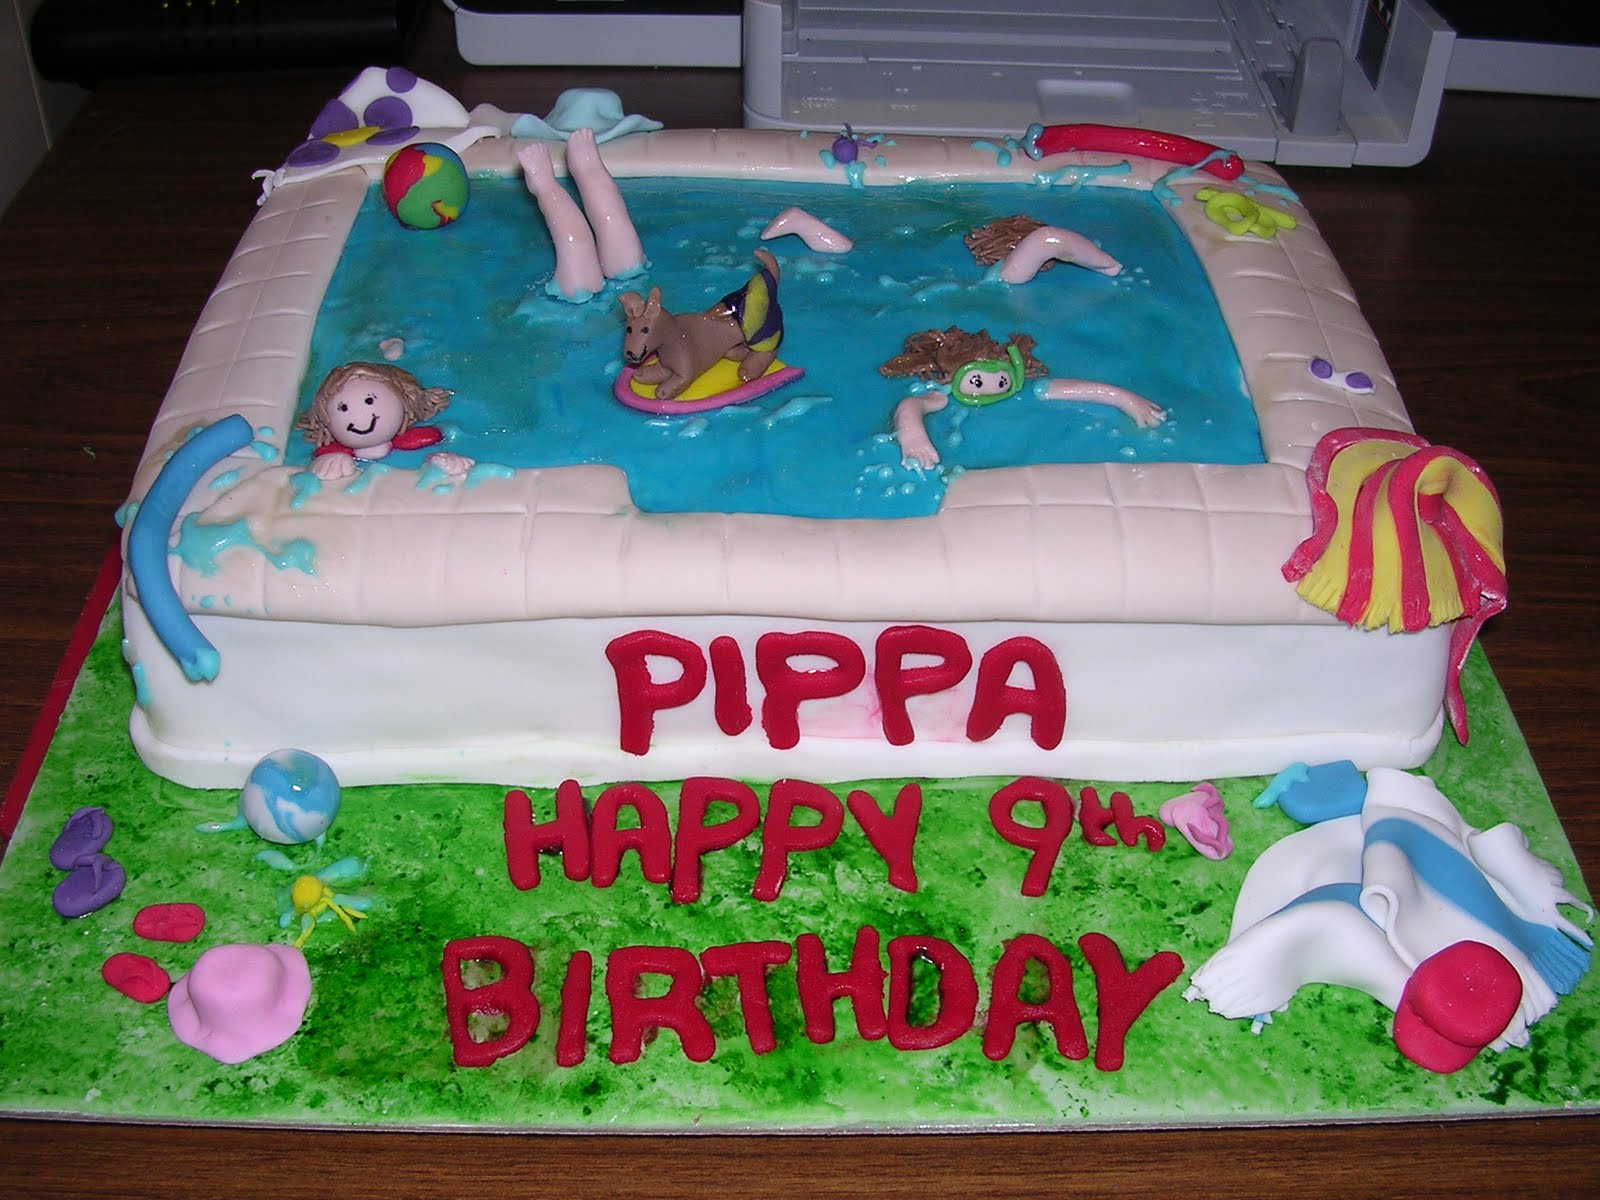 Pool Party Ideas For Kids Birthday Cake